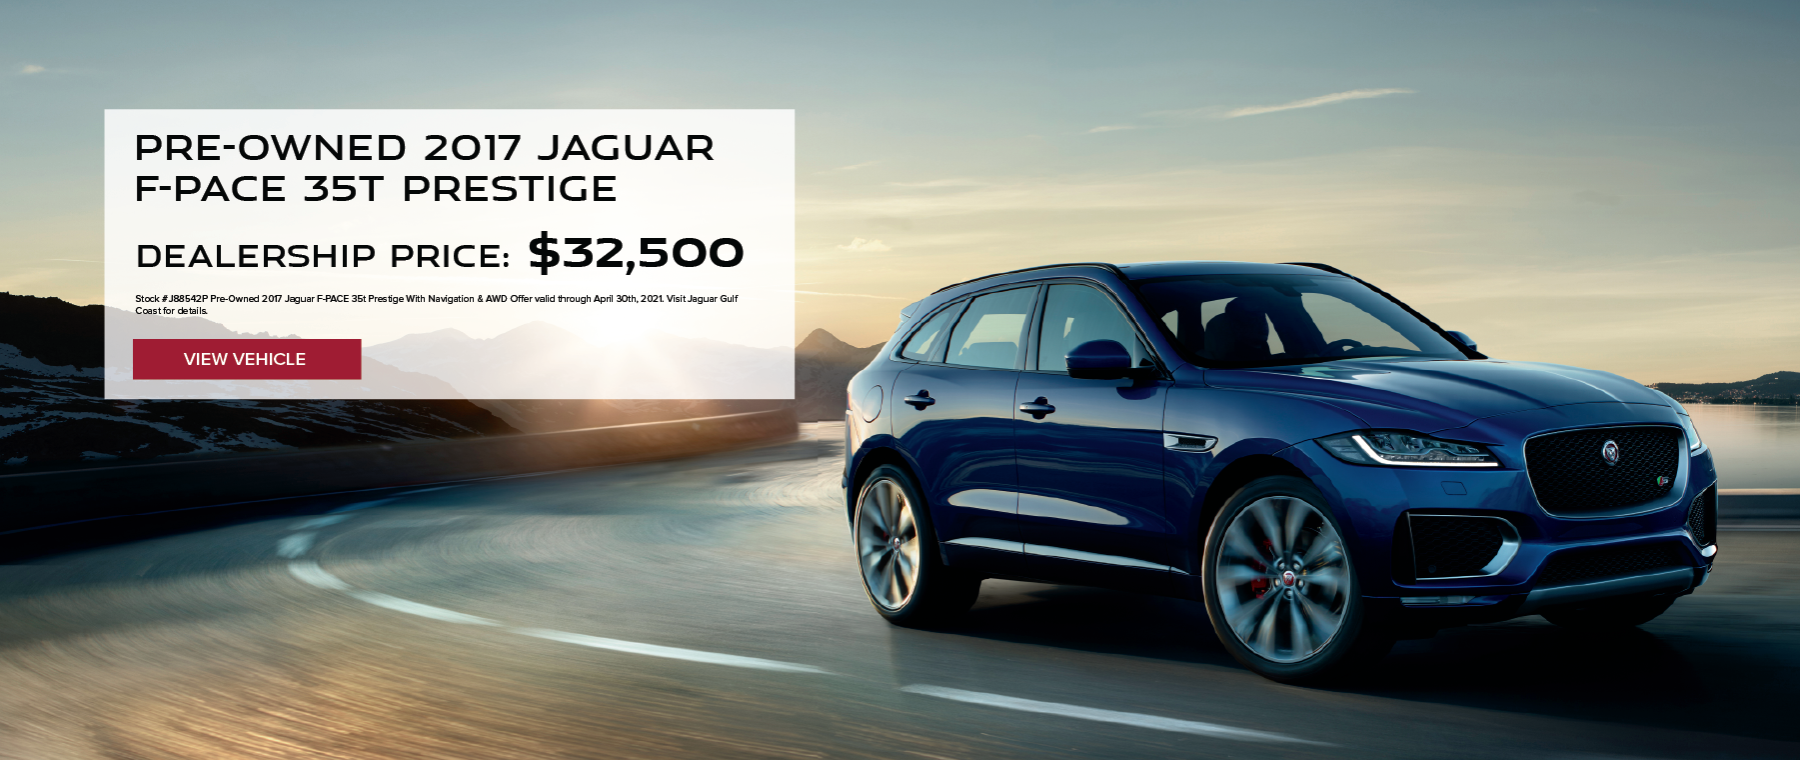 Blue Pre-Owned 2017 Jaguar F-PACE 35t Prestige With Navigation & AWD on curving road. Click to view vehicle.